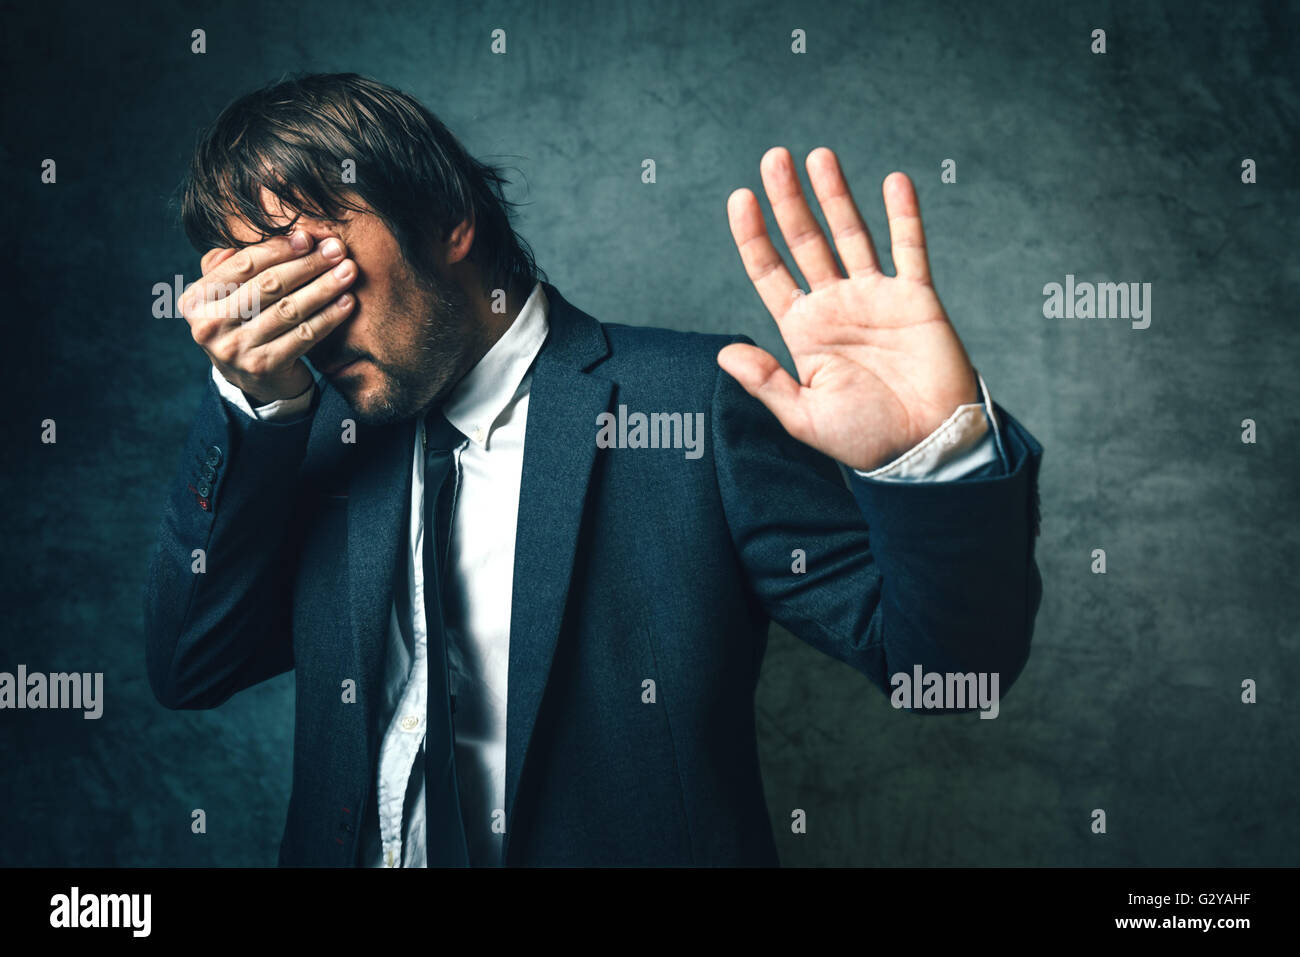 Crooked politician hiding face from newspaper photographers after political scandal,  public embarrassment, hand - Stock Image